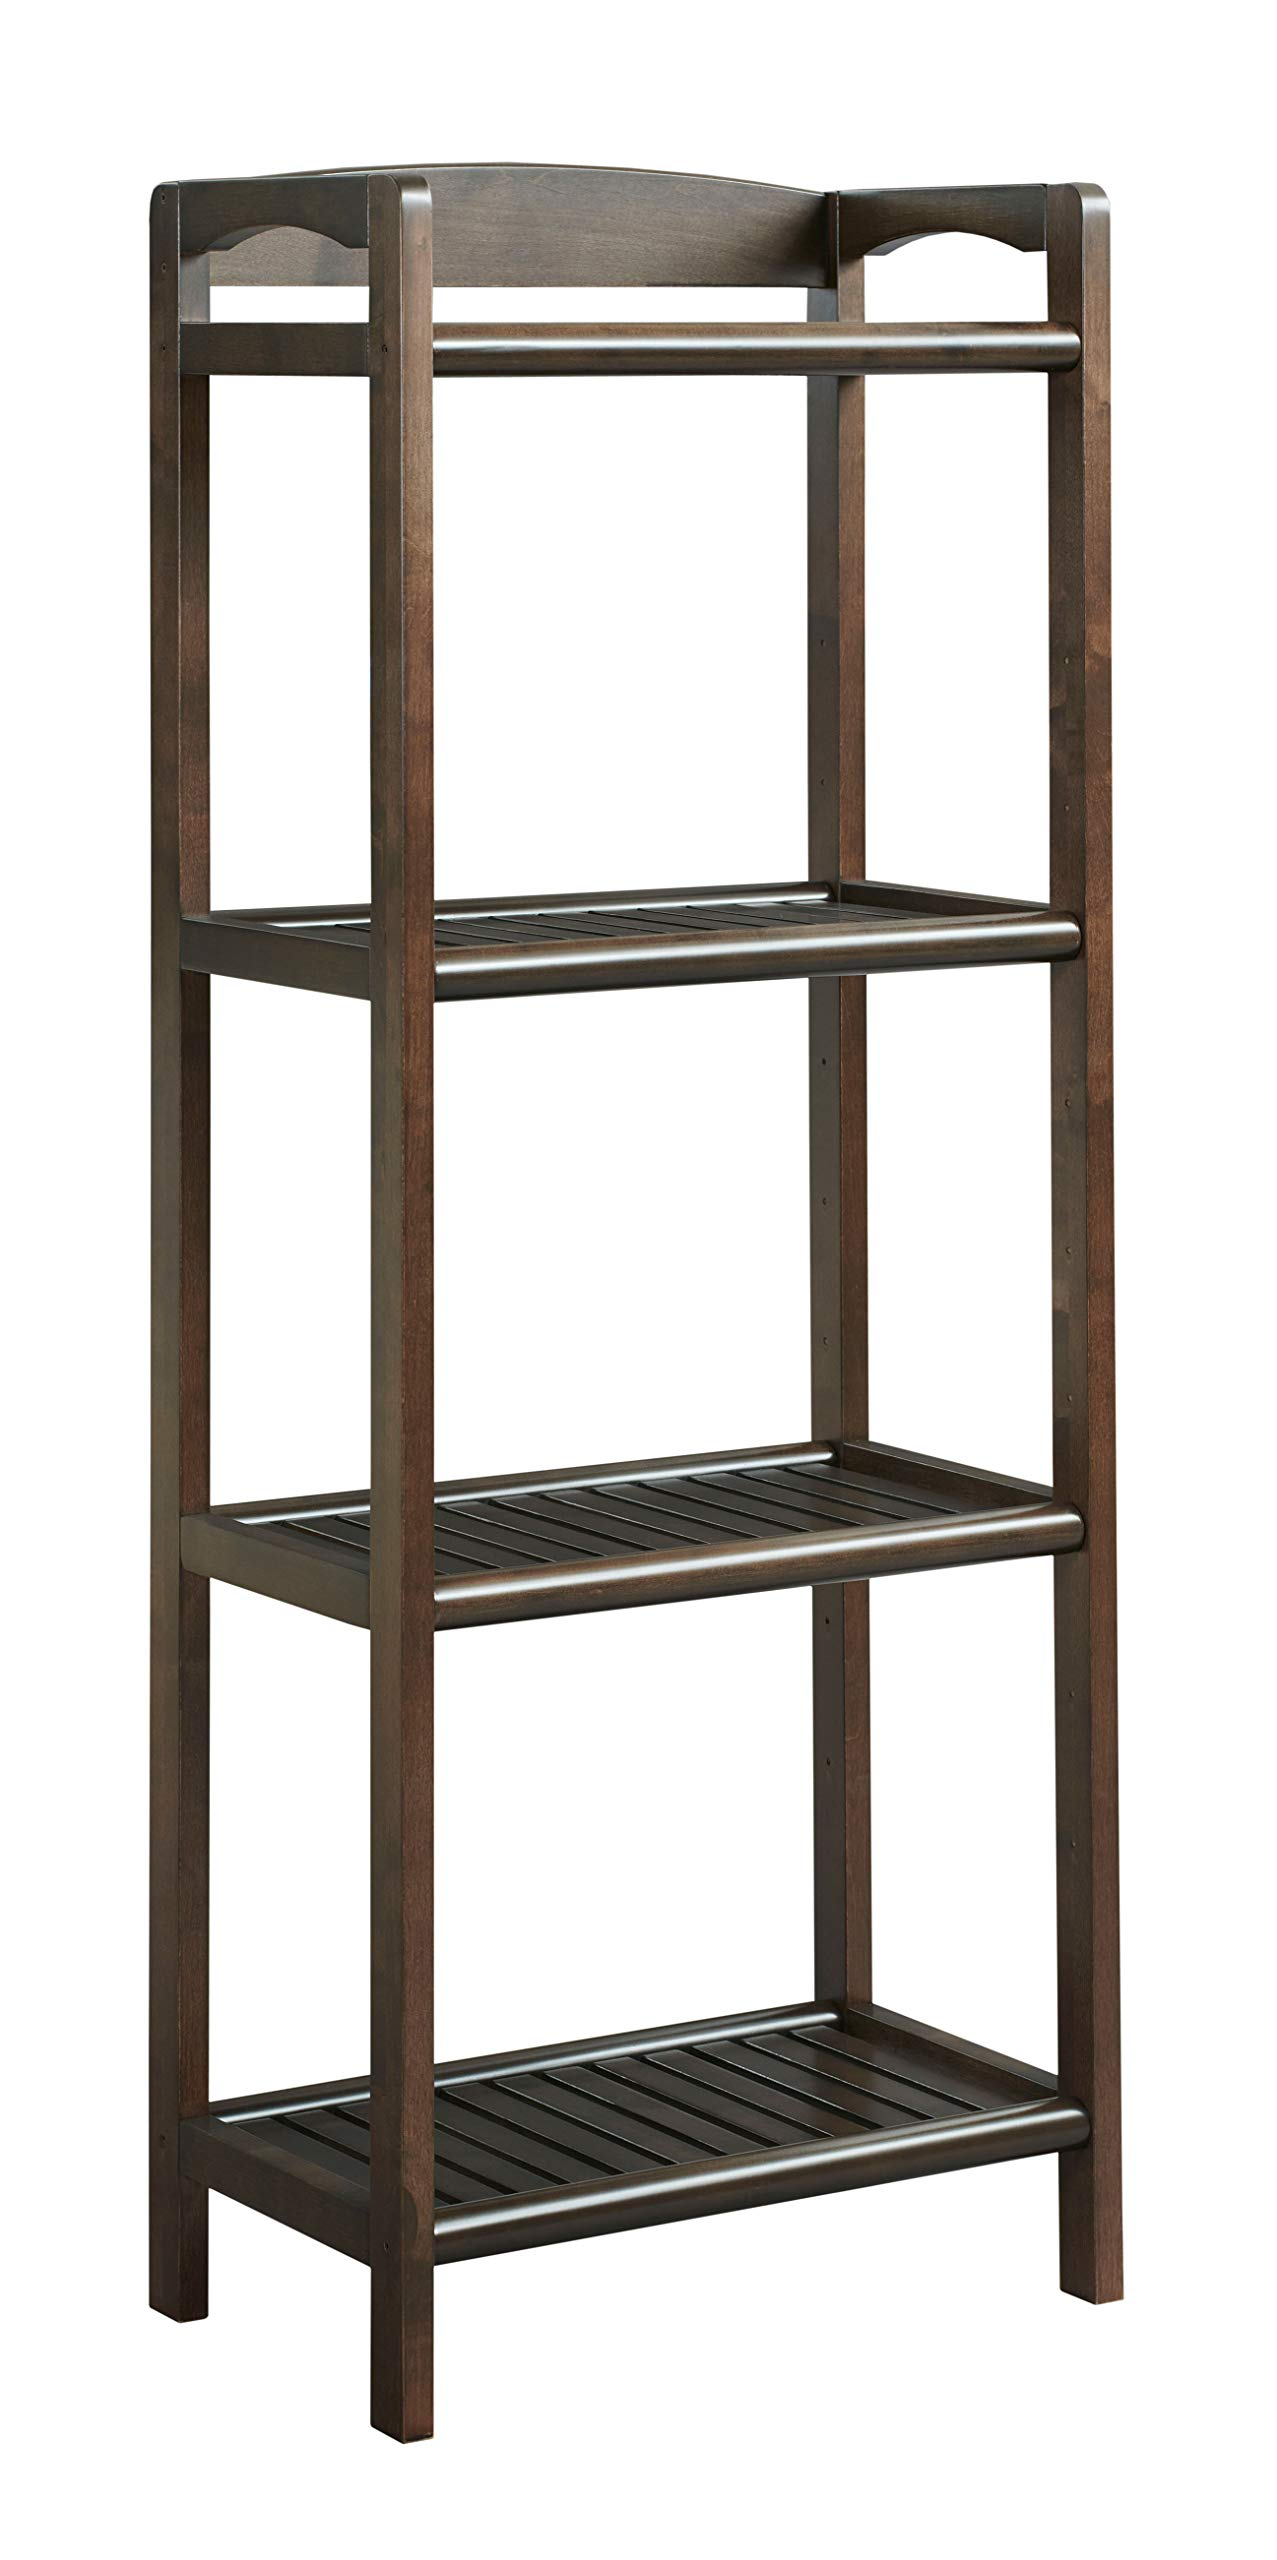 New Ridge Home Goods 2282-ESP Abingdon Tall Bookcase/Media Tower with Adjustable Shelves, One Size, Espresso by New Ridge Home Goods